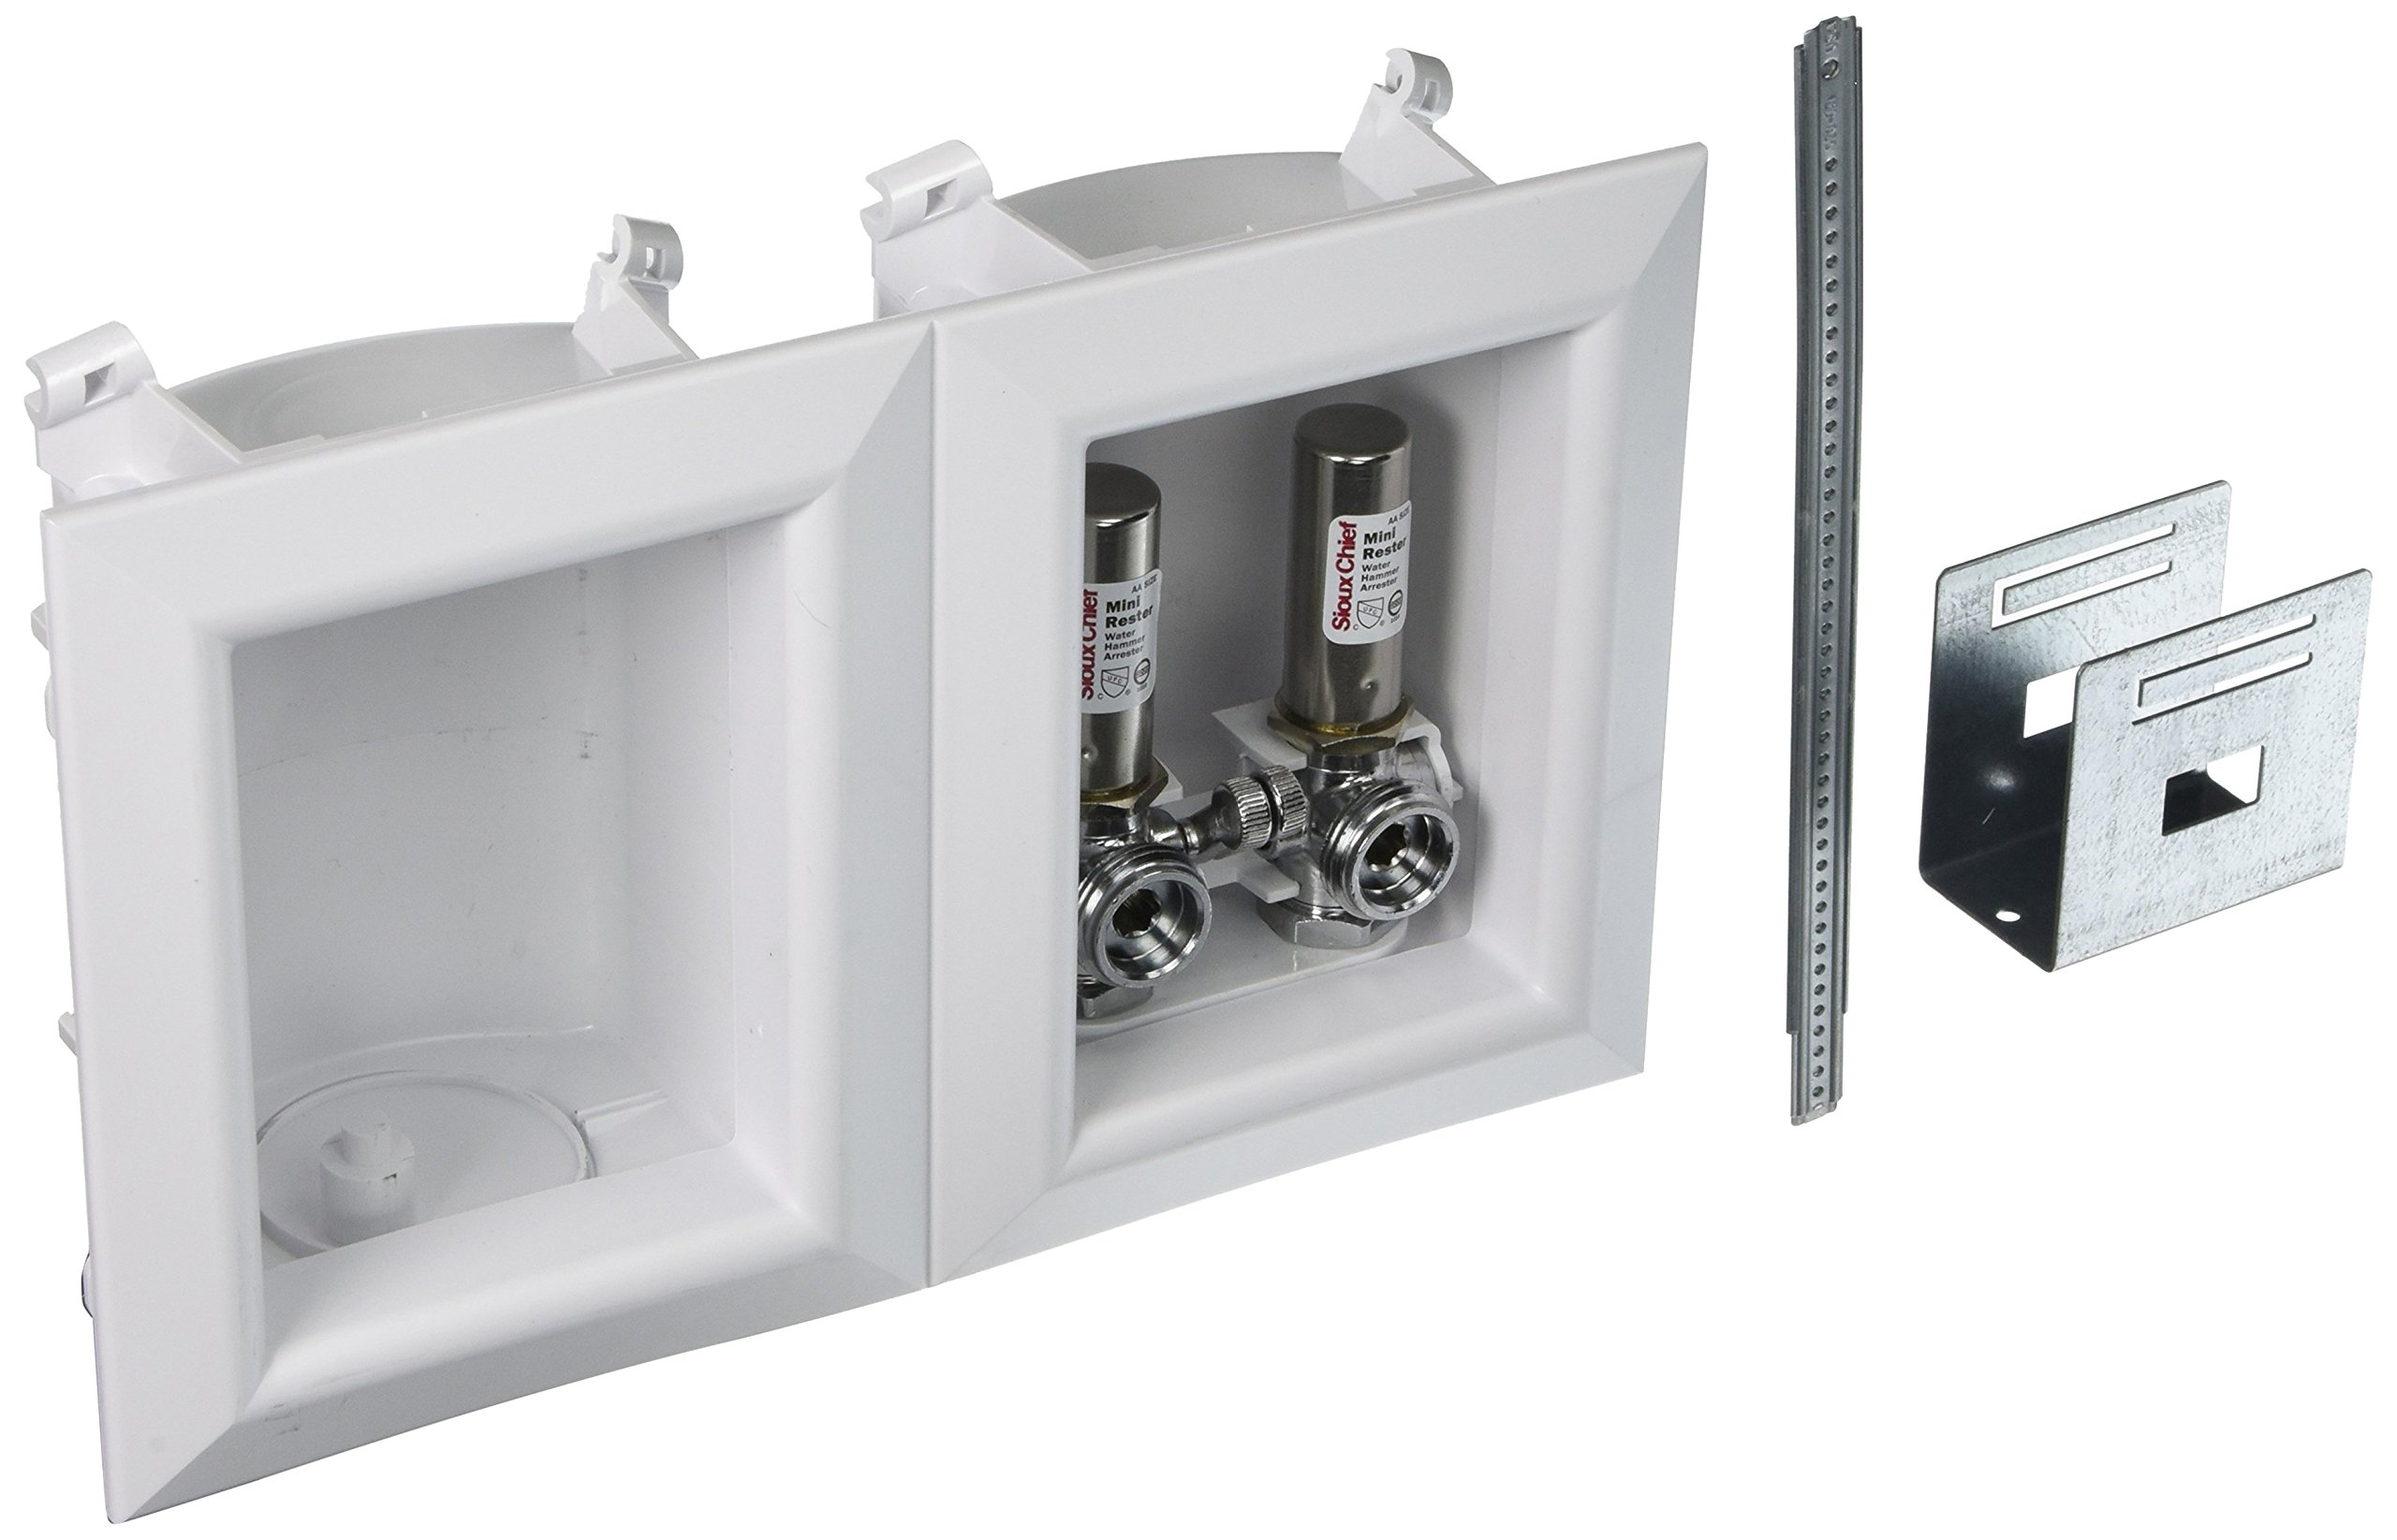 Sioux Chief 696-2313XF Washing Machine Outlet Ox Box- With 1/2 Inch Pex Crimp Connections-With Hammer Arrestors by Sioux Chief